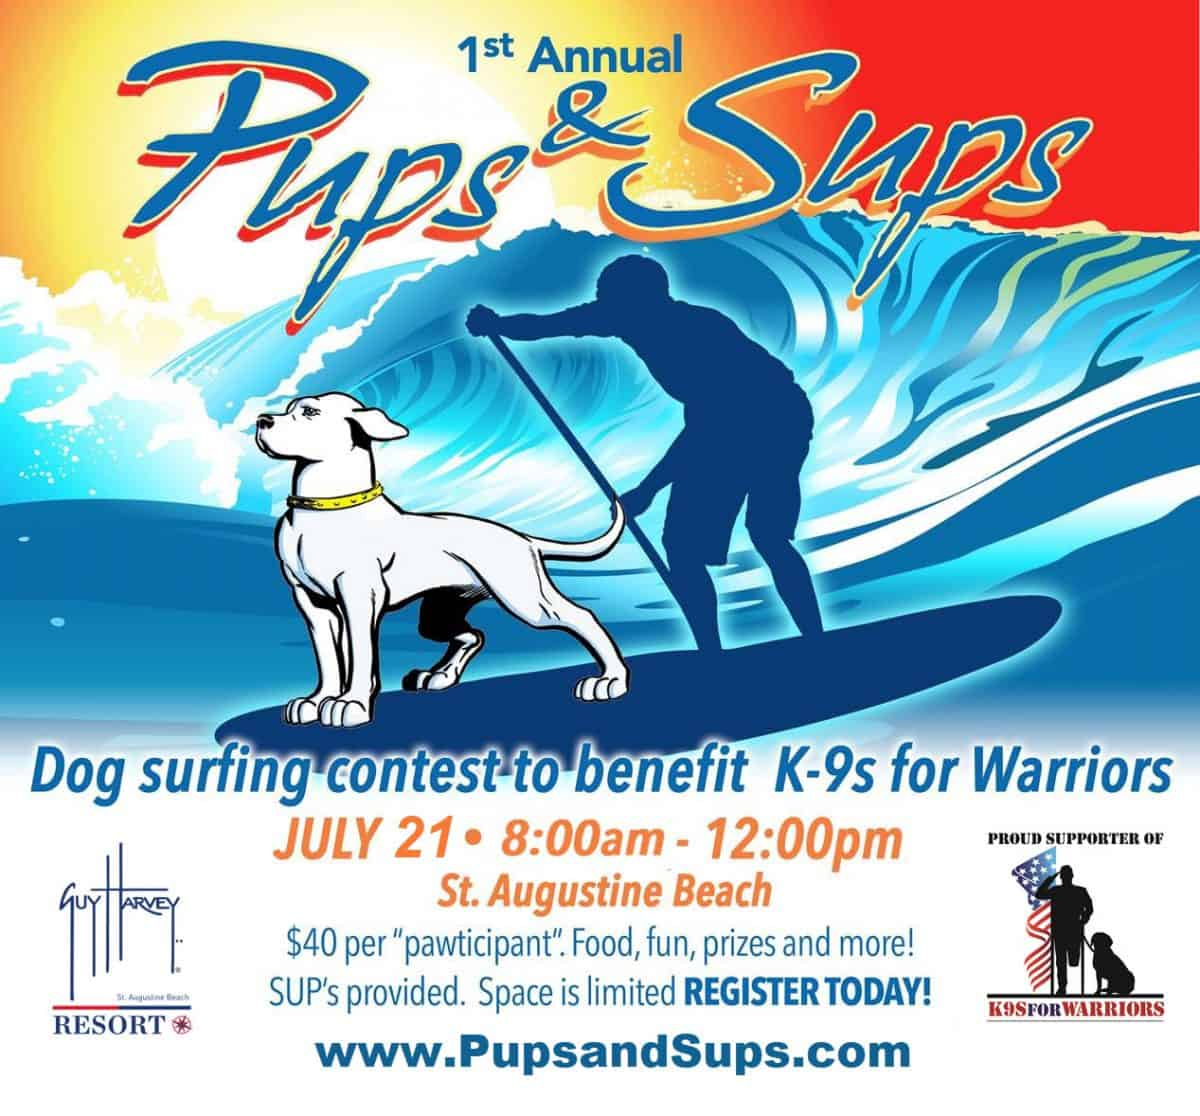 1st Annual Pups & Sups